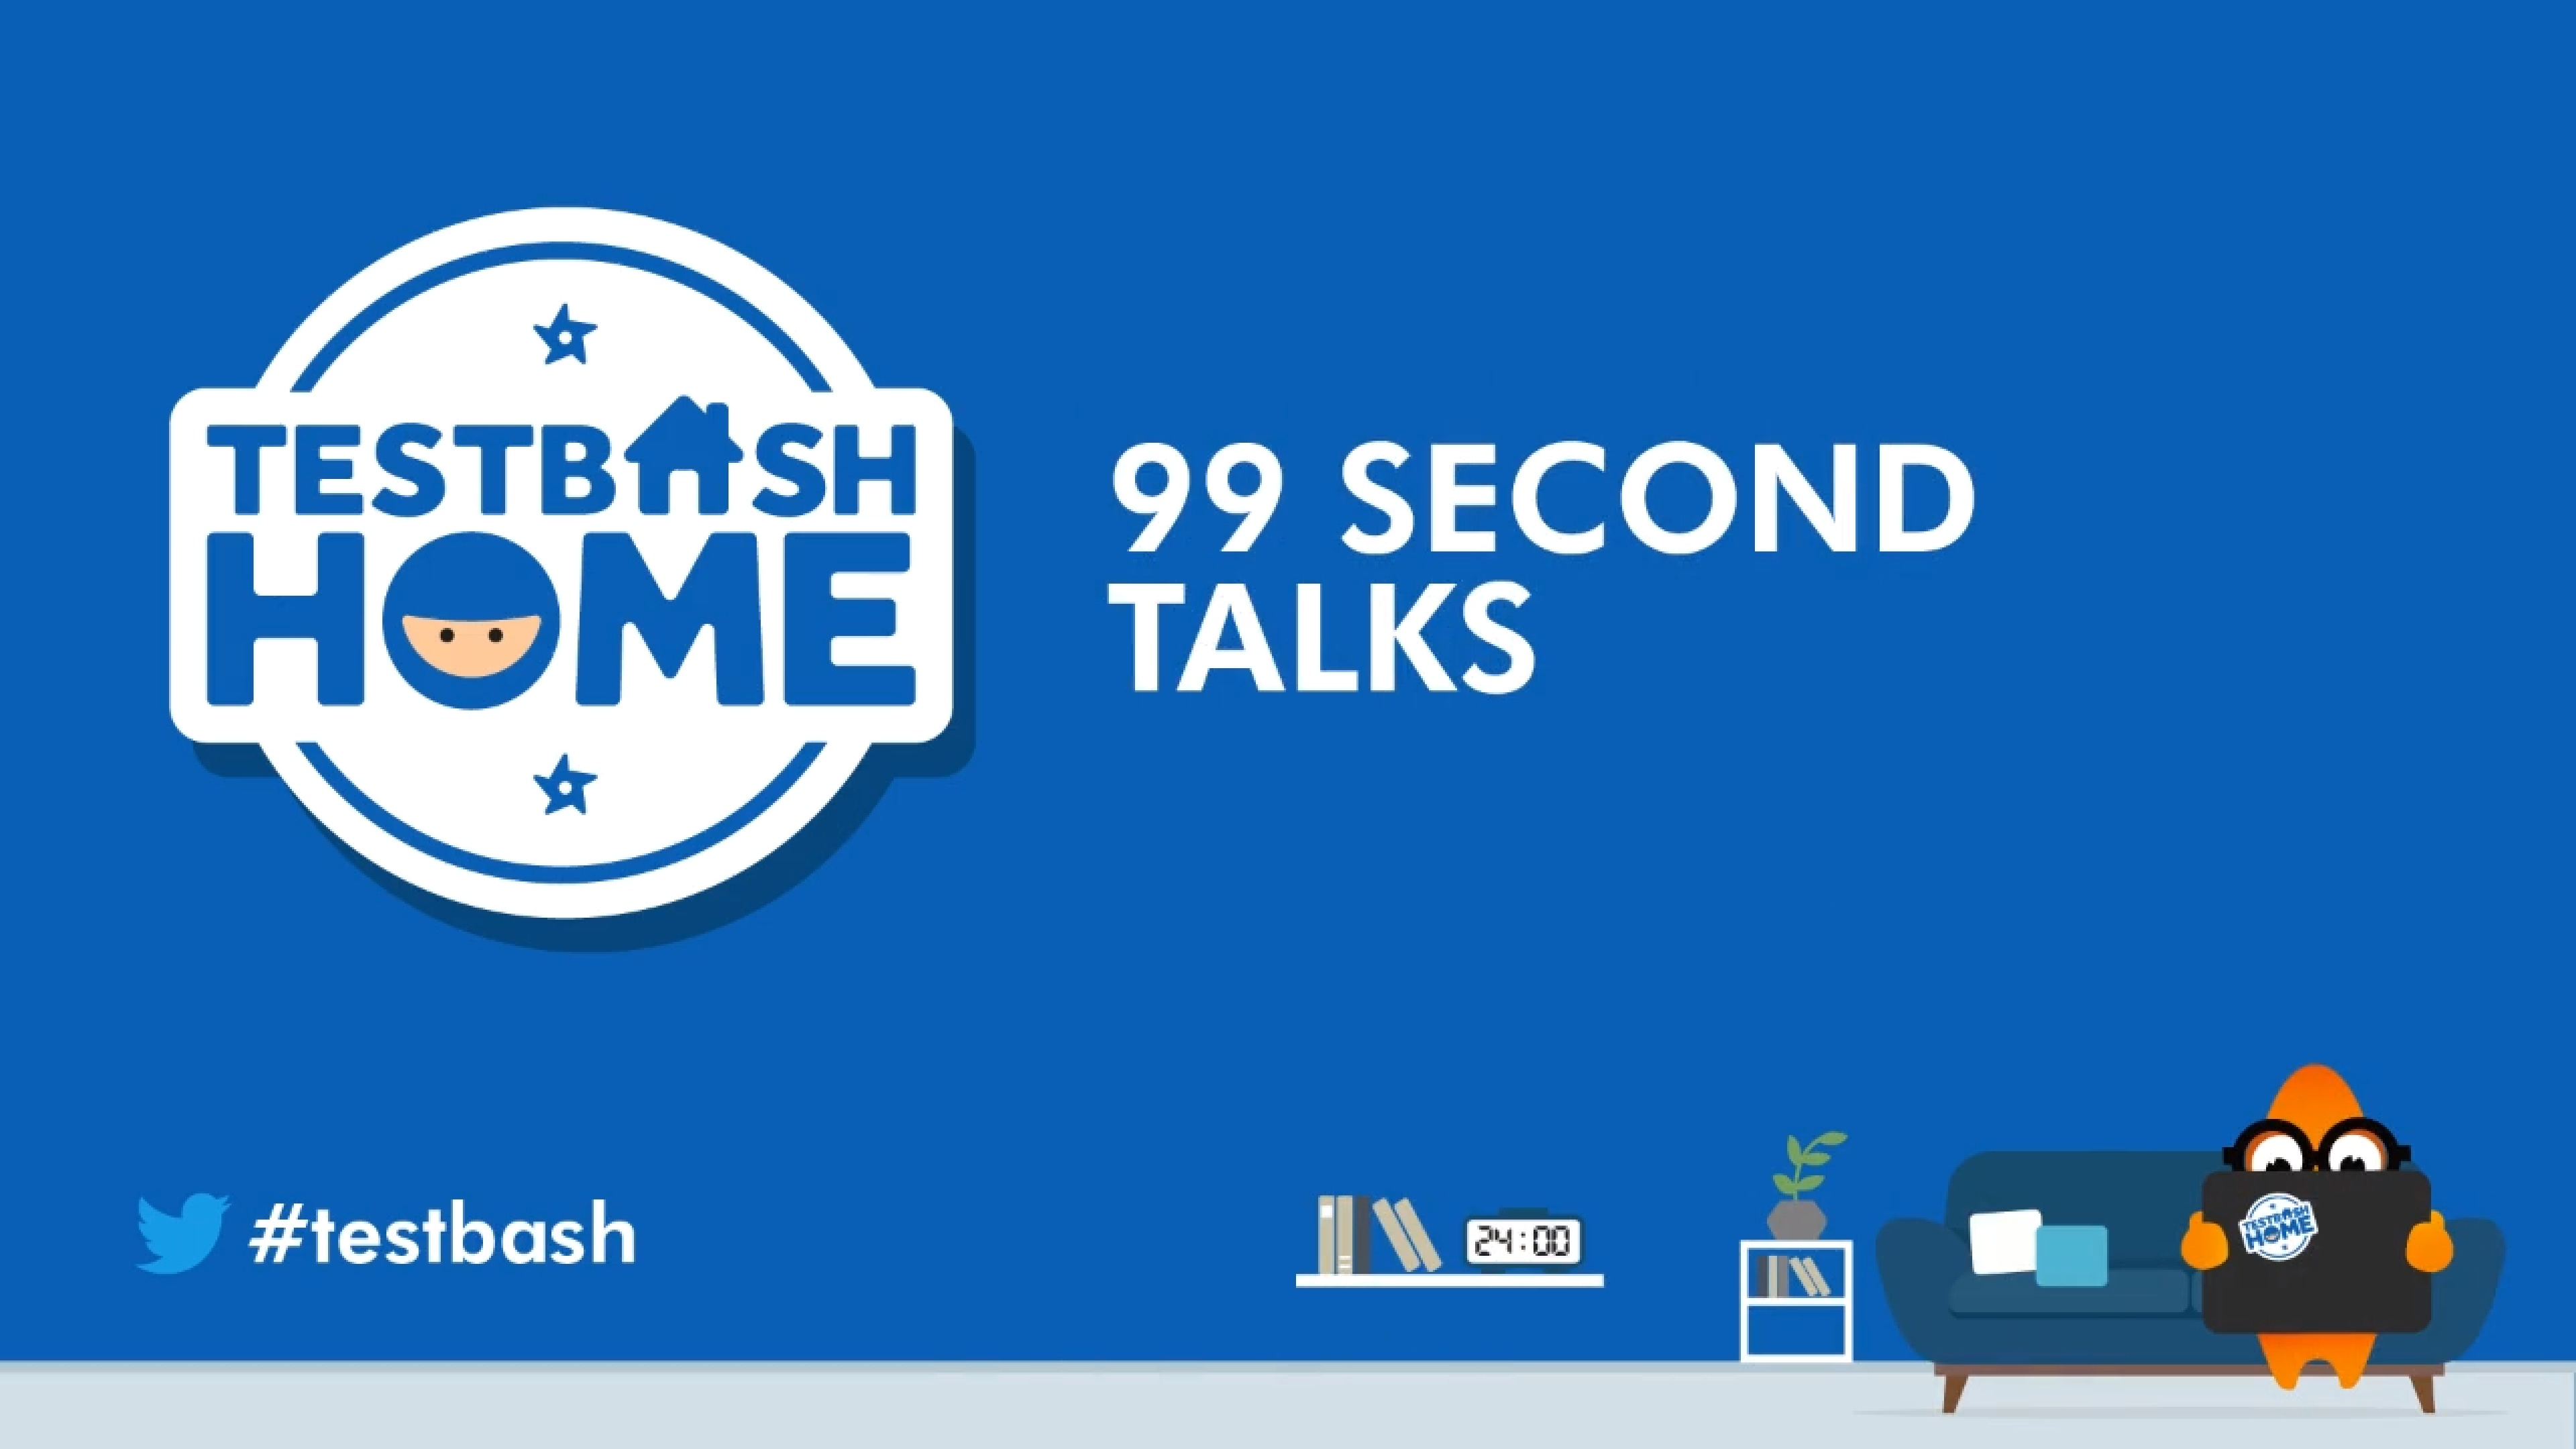 TestBash Home Part 3 - 99 Second Talks